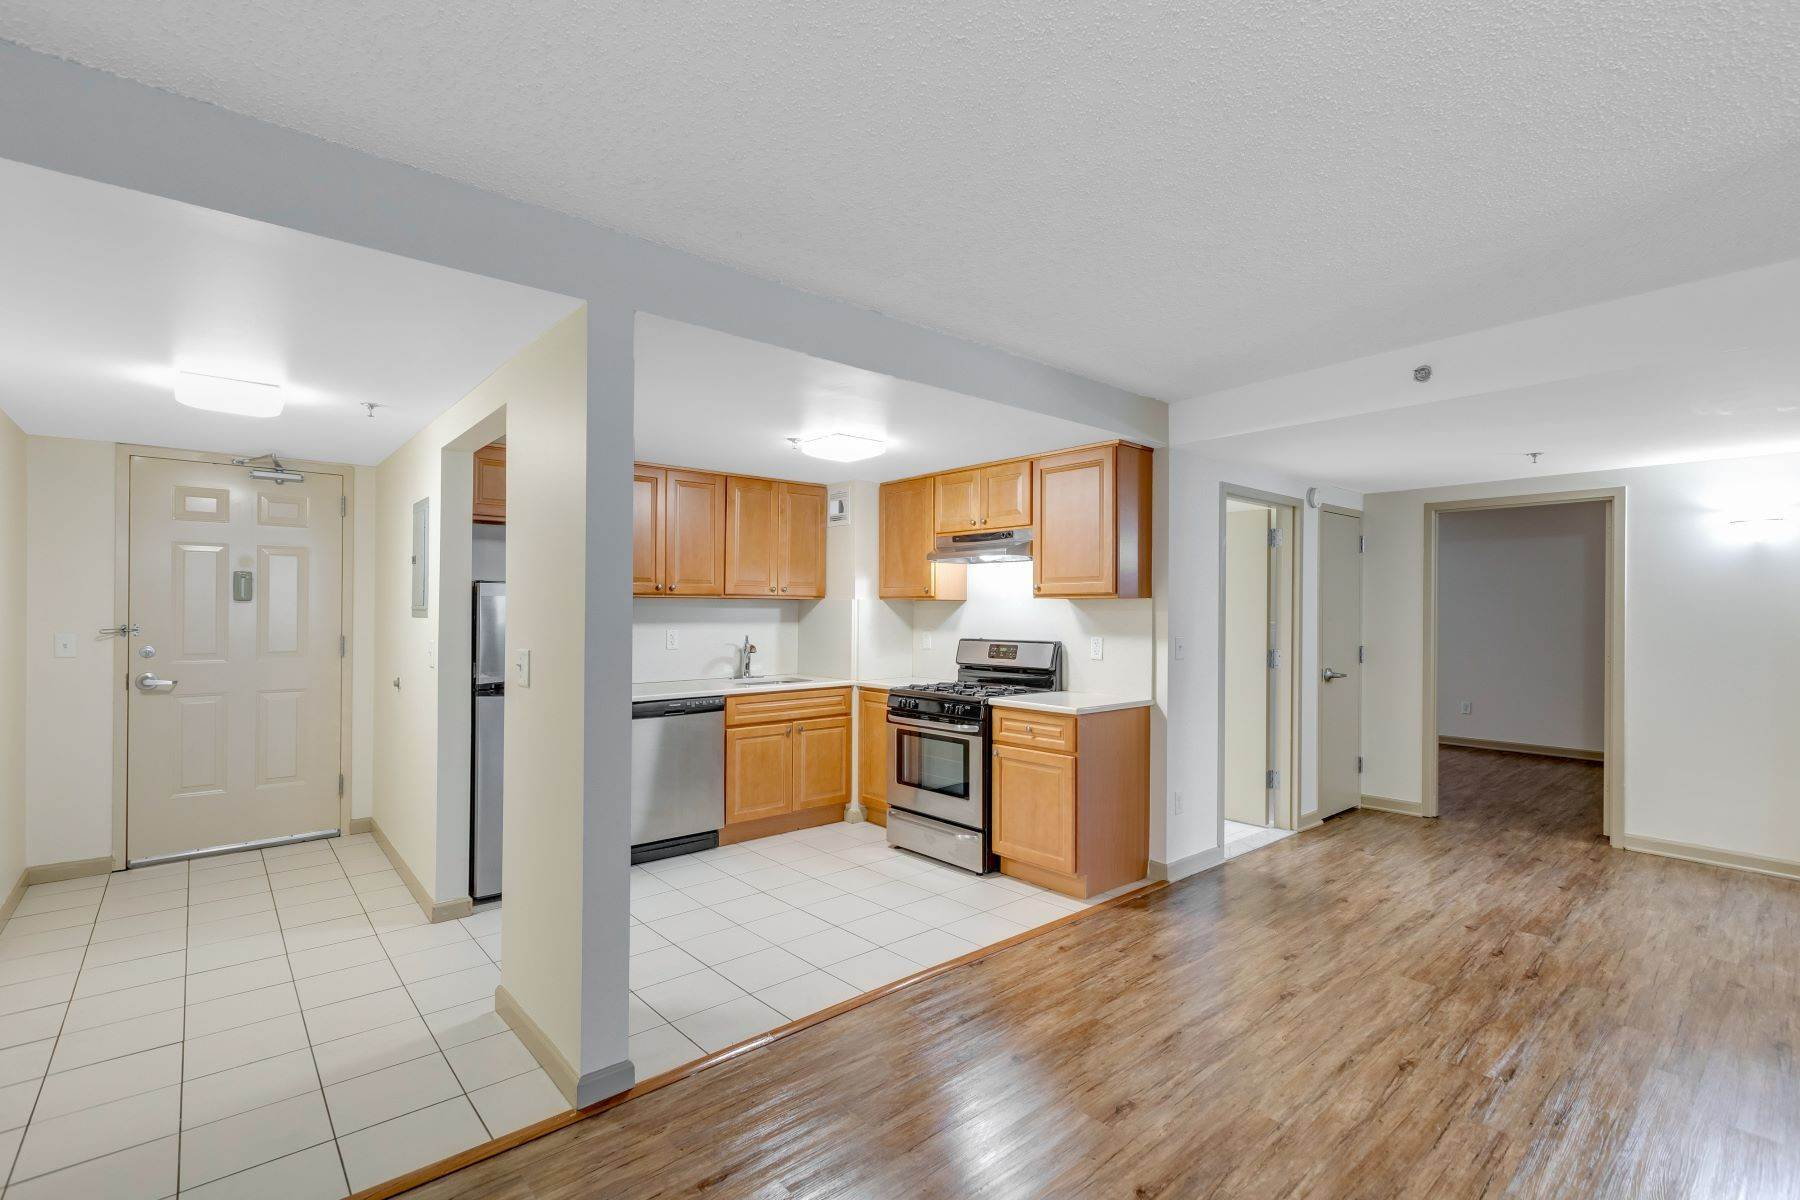 Other Residential Homes em Welcome to Peninsula Court. Spacious 2 bedroom in Elevator building . 22-34 West 25th Street, Unit 1C Bayonne, Nova Jersey 07002 Estados Unidos